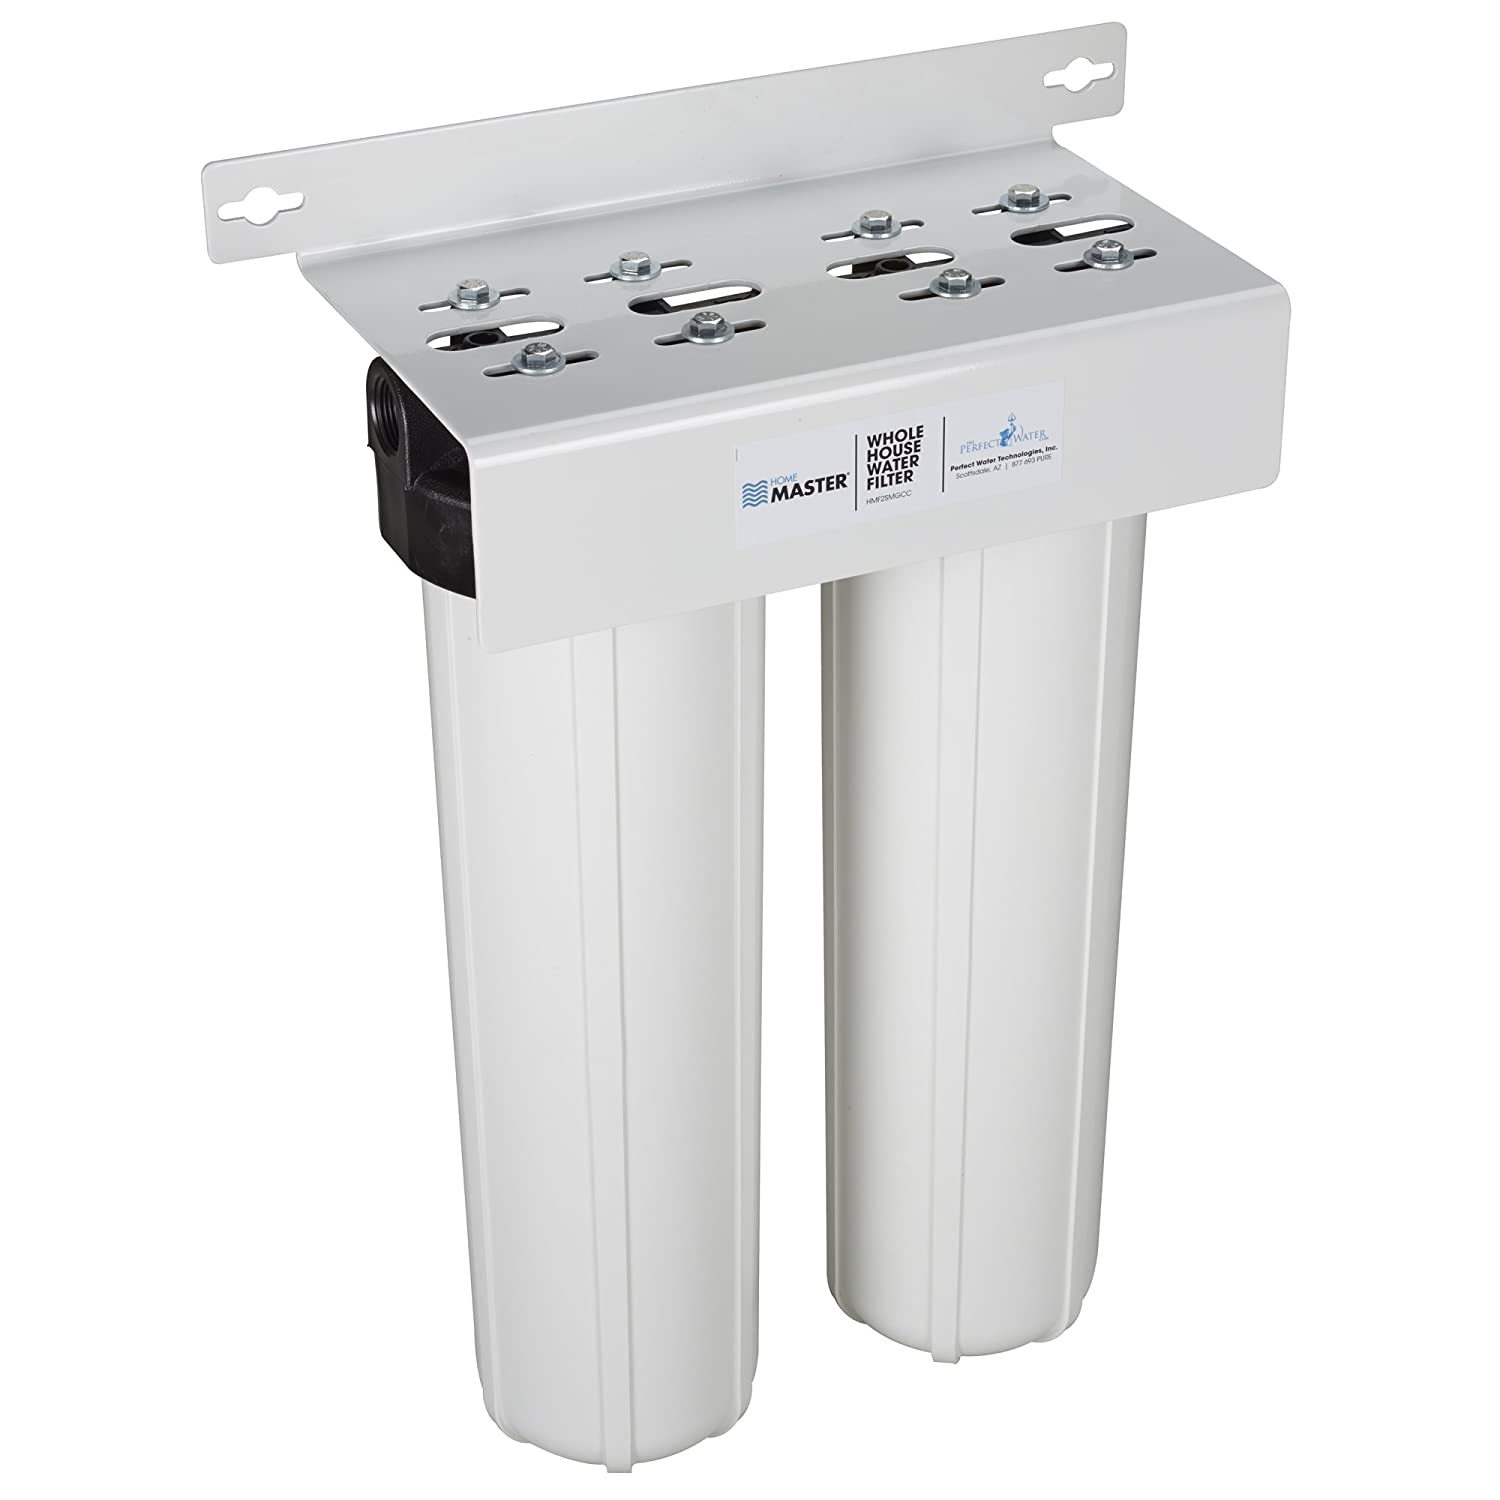 "2 Stage Whole House Water Filter 20"" Standard"